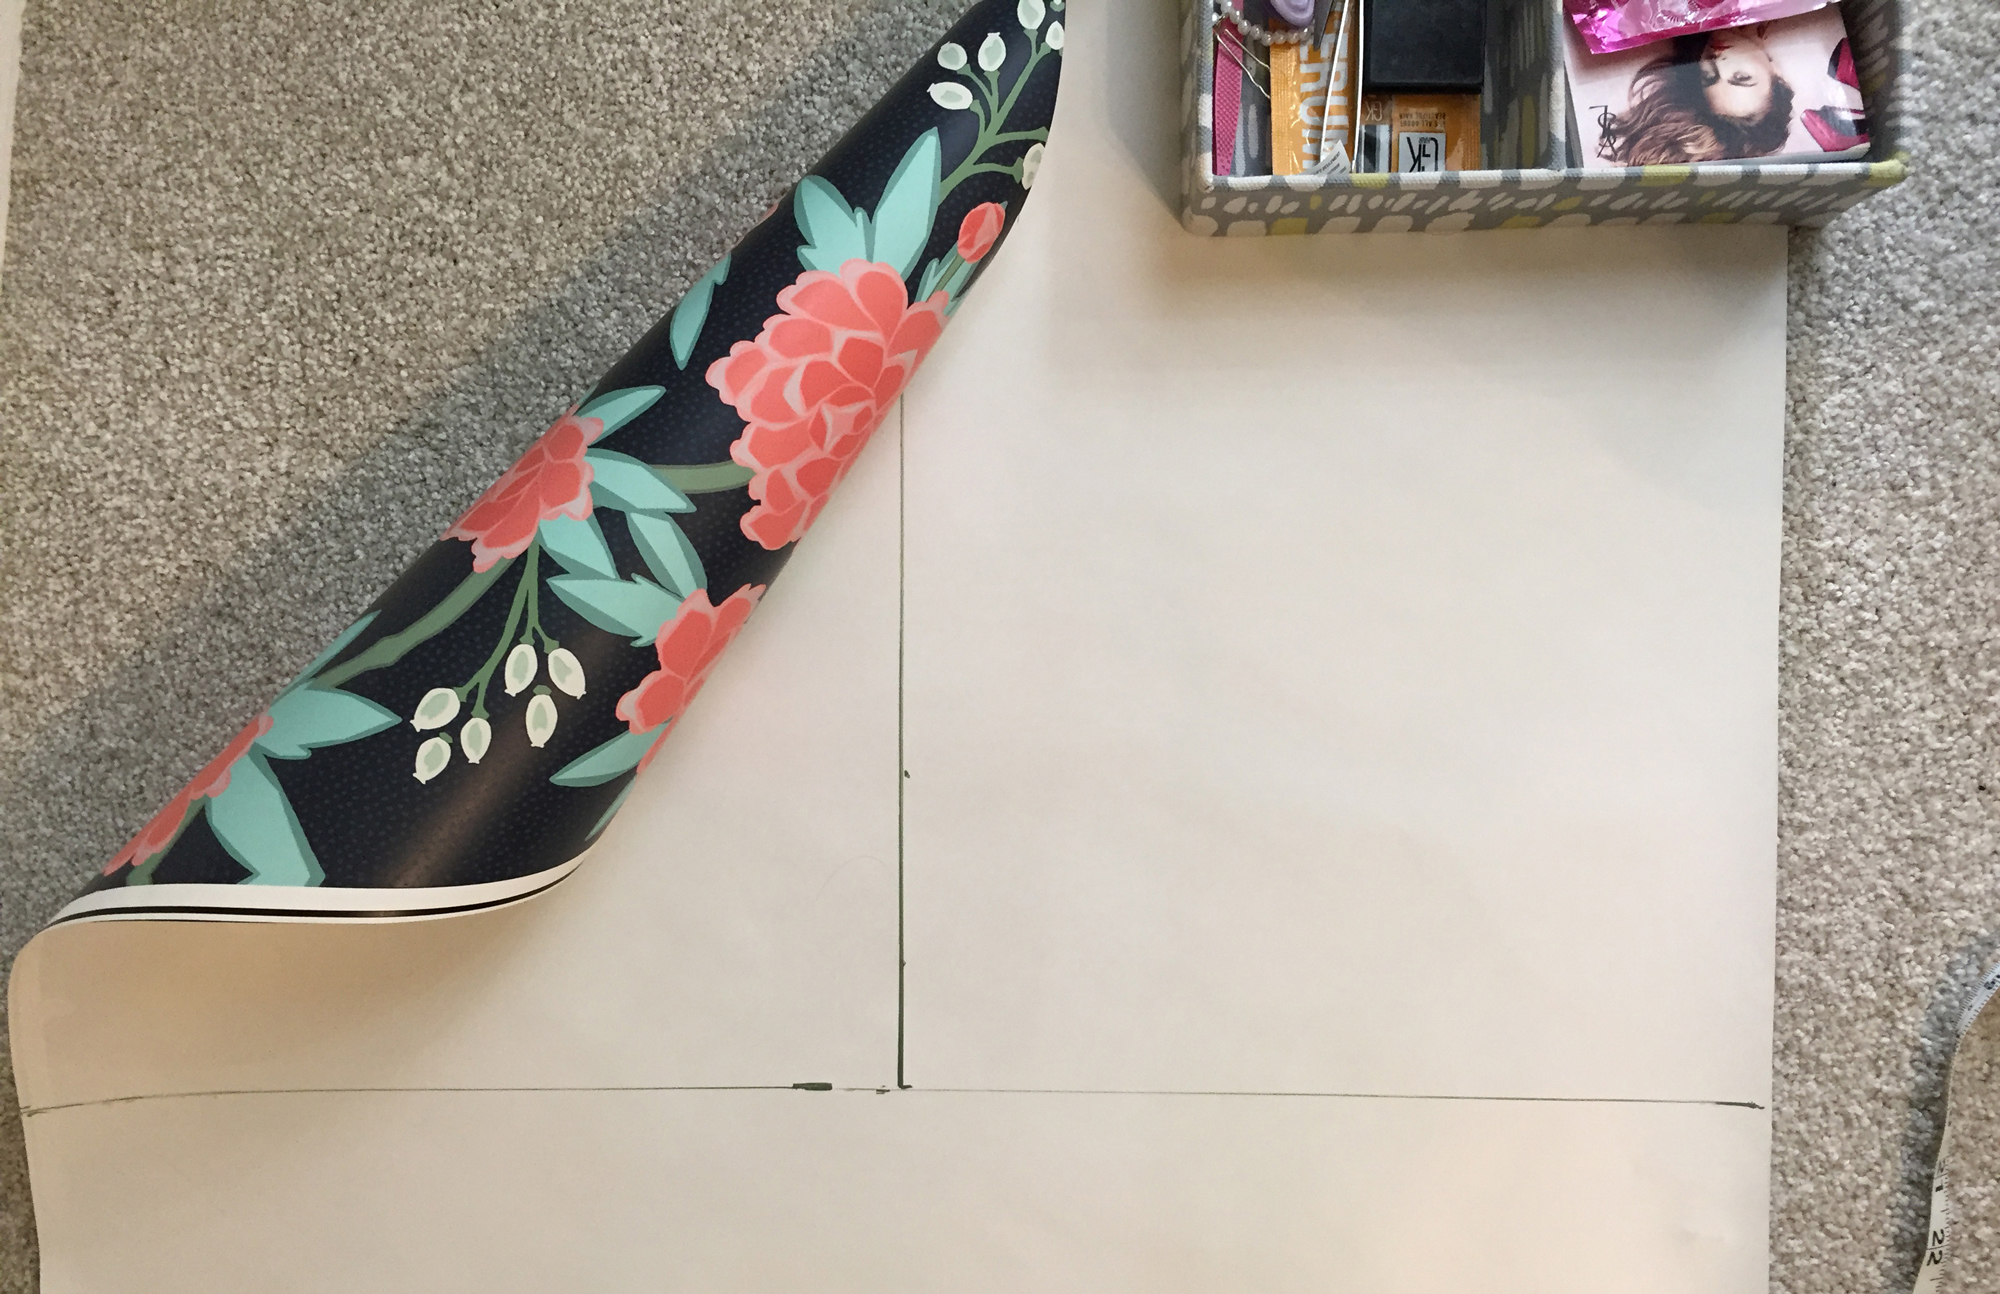 Measuring wallpaper